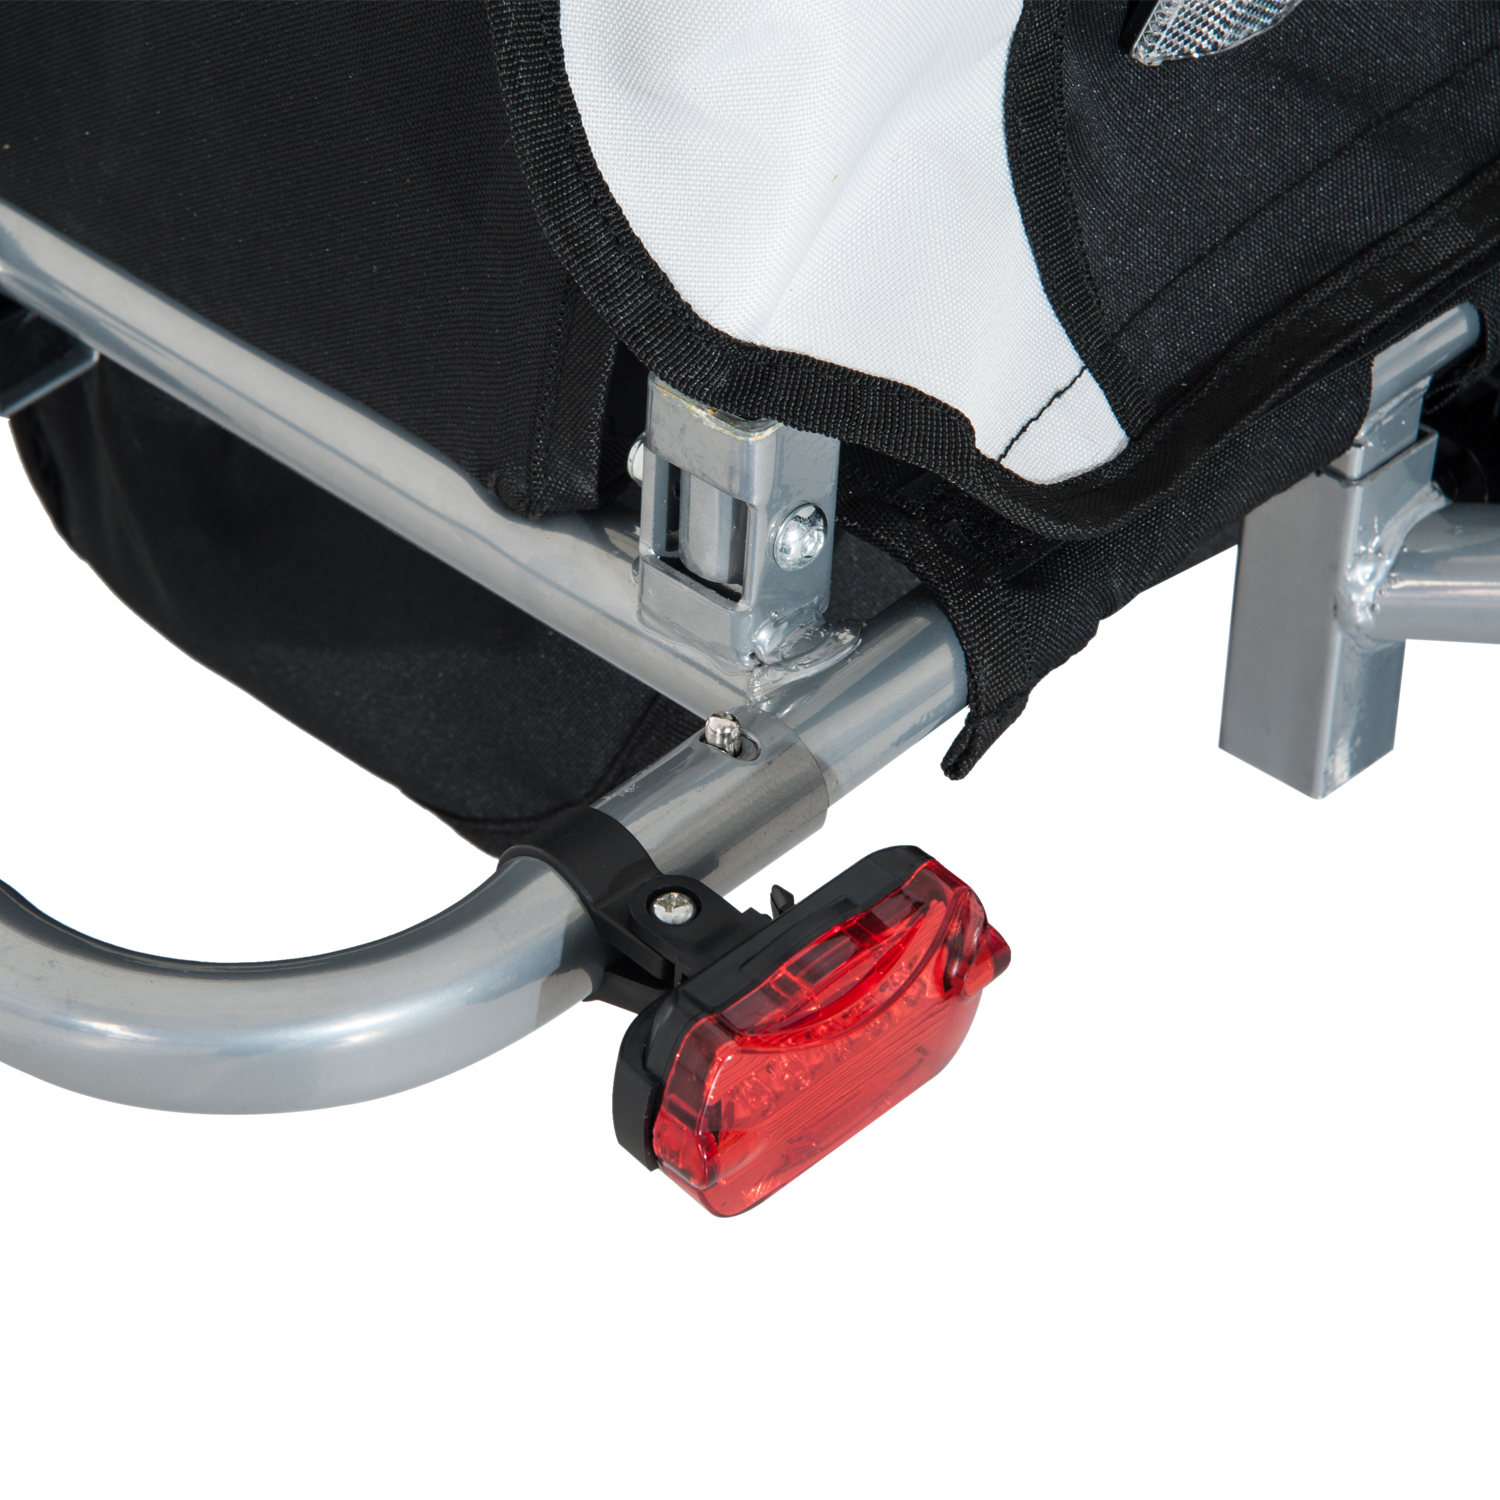 2-Seater-Child-Bike-Trailer-Kids-Carrier-Safety-Harness-Baby-Stroller-Jogger thumbnail 22